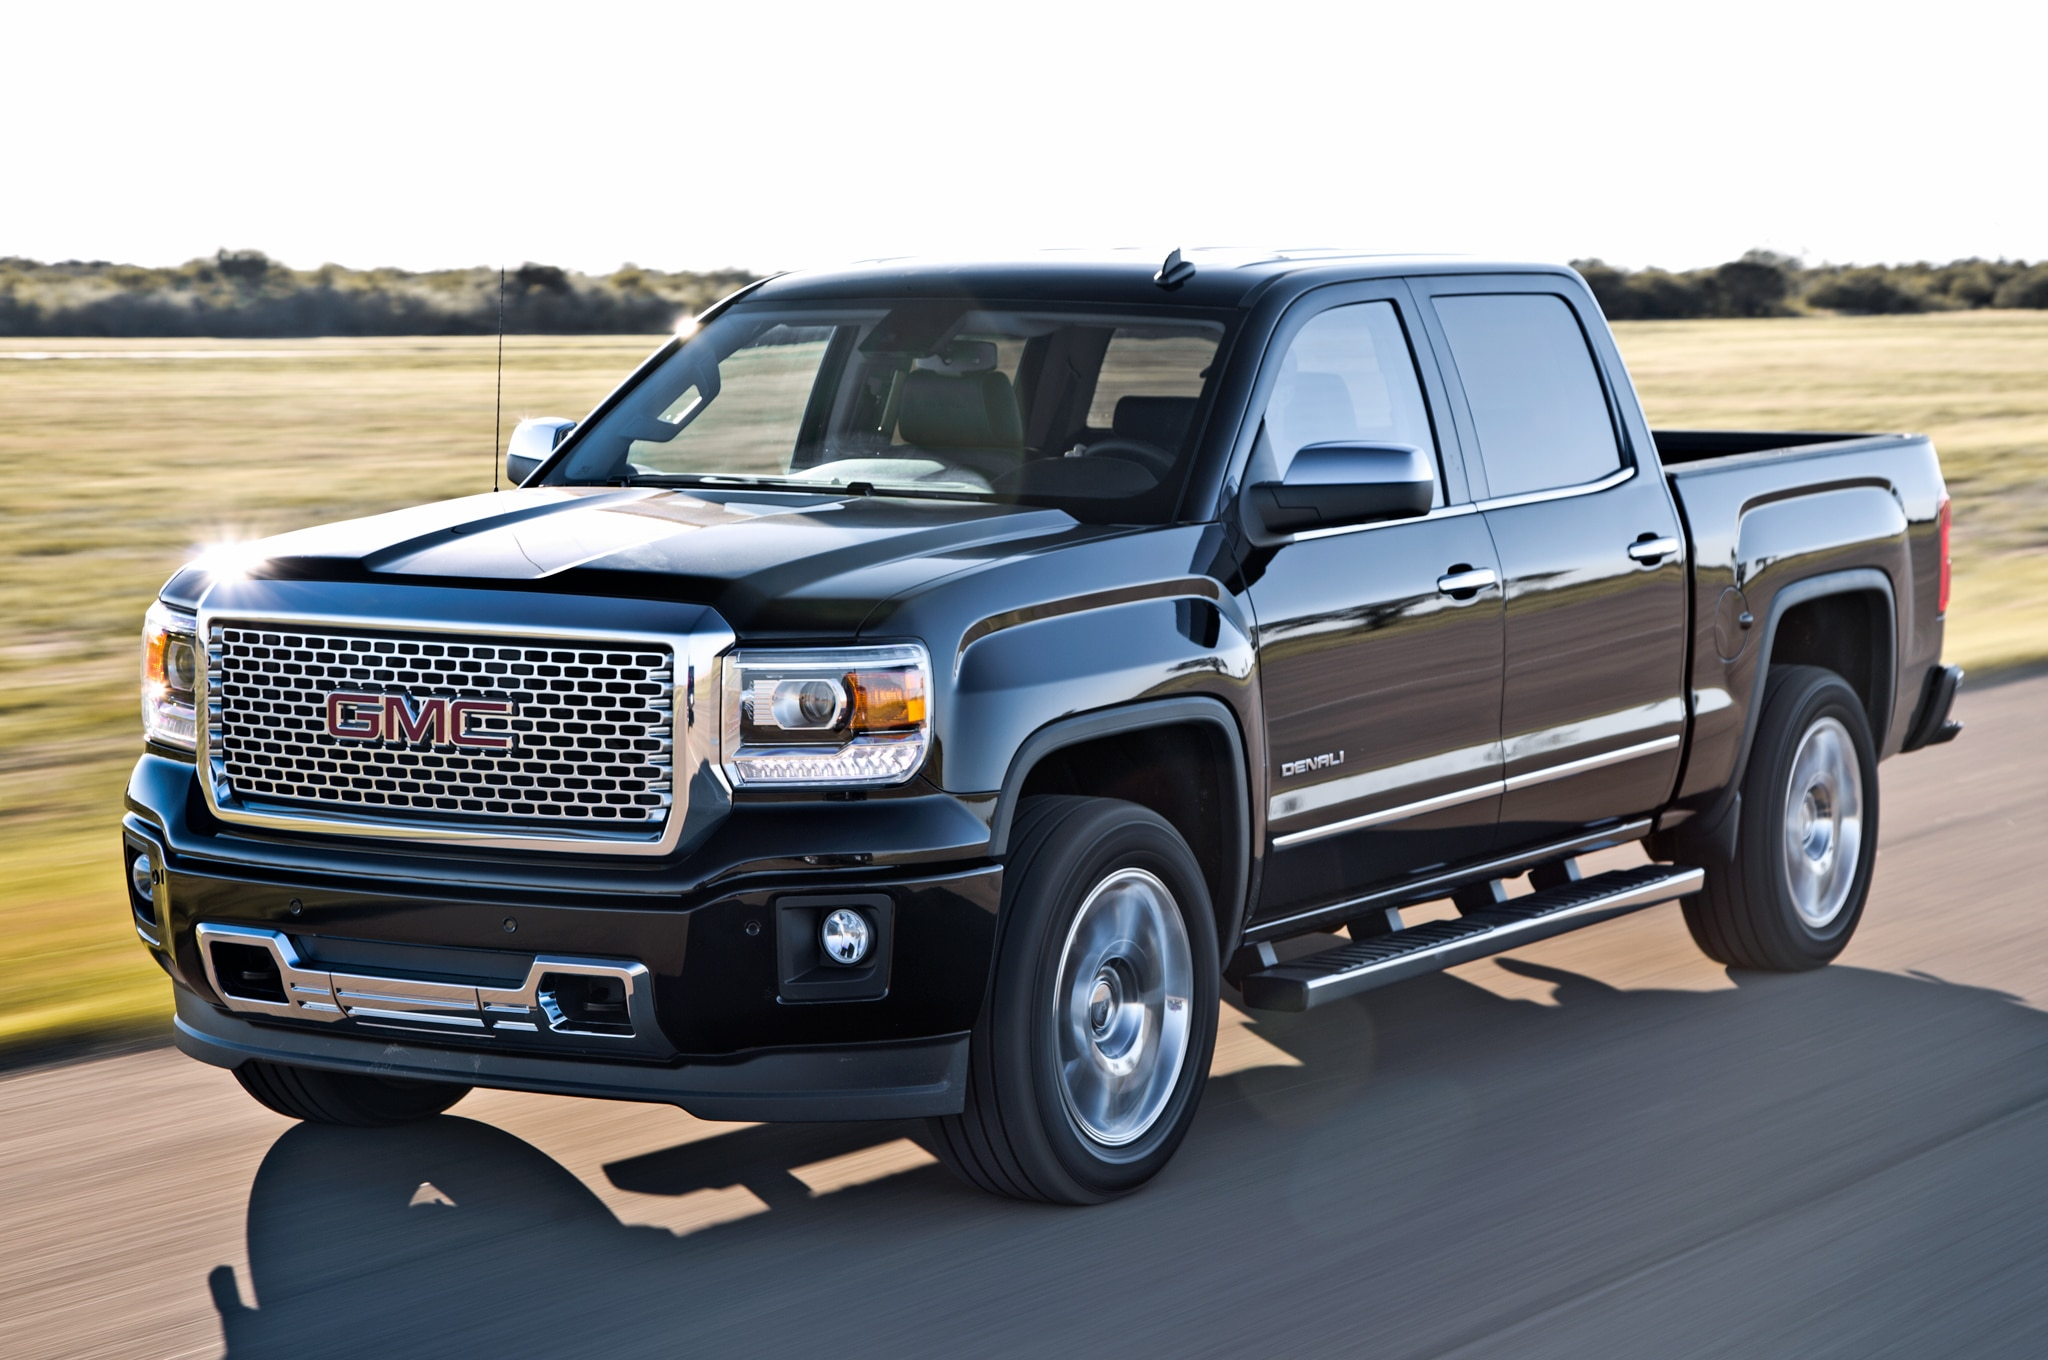 small resolution of 2014 gmc sierra denali 1500 front three quarters view in motion